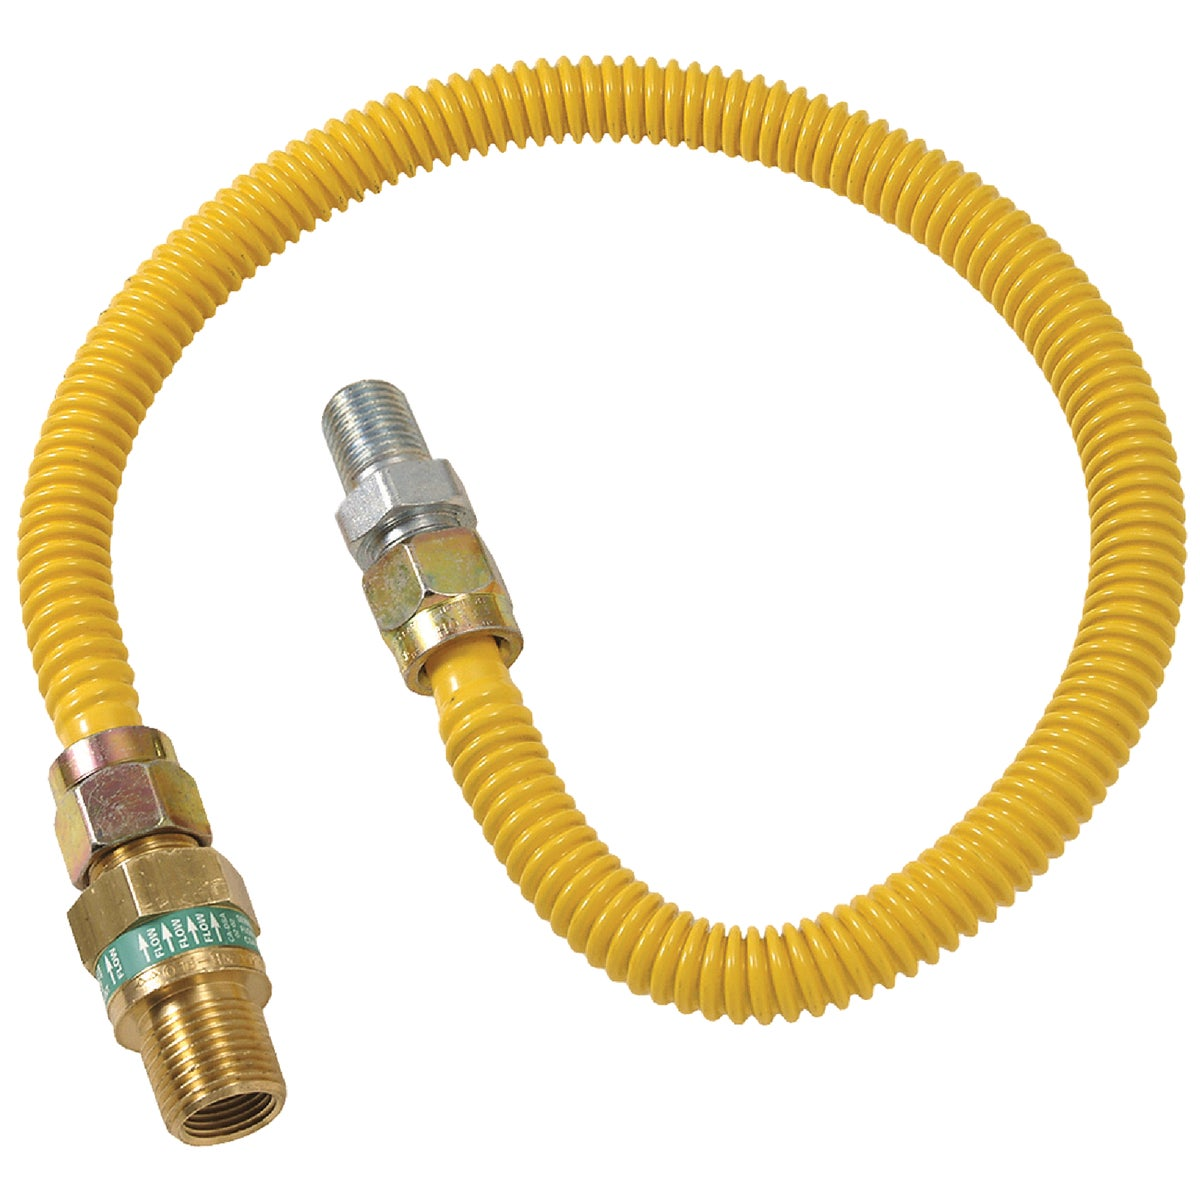 1/2X1/2-60 GAS CONNECTOR